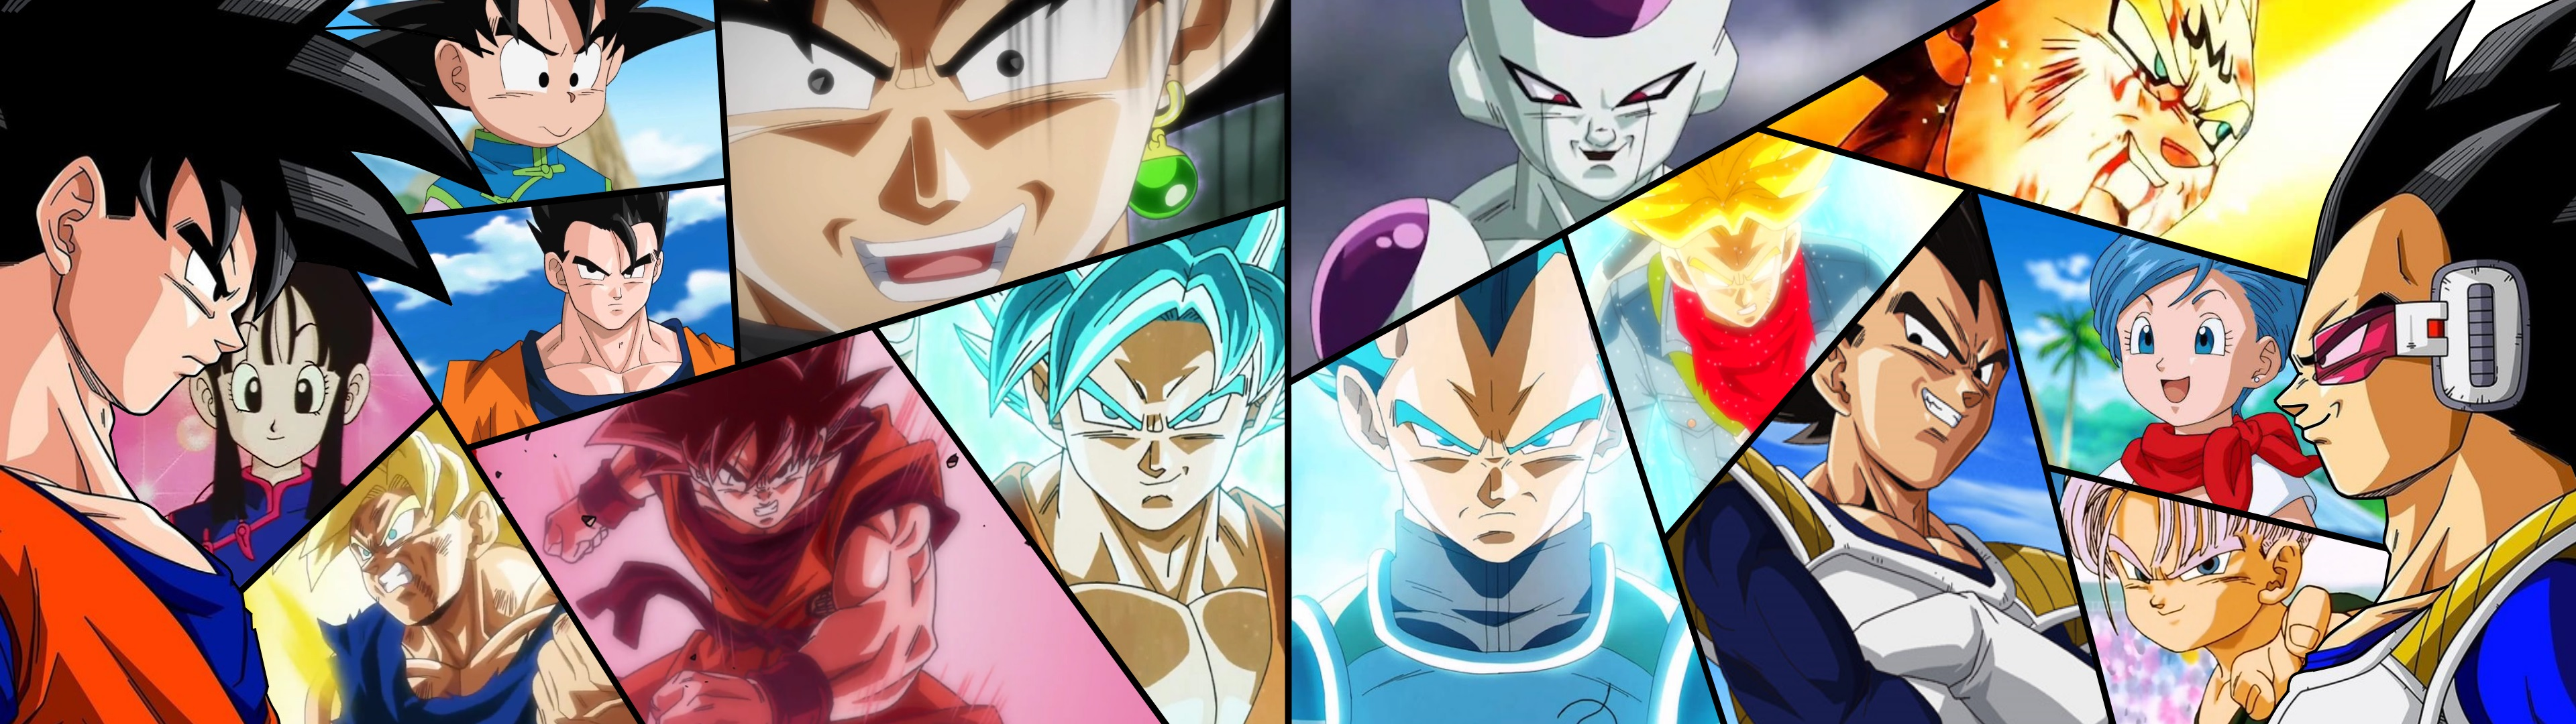 Wallpaper Dual Screen Dragon Ball Z Super By Ailloumou On